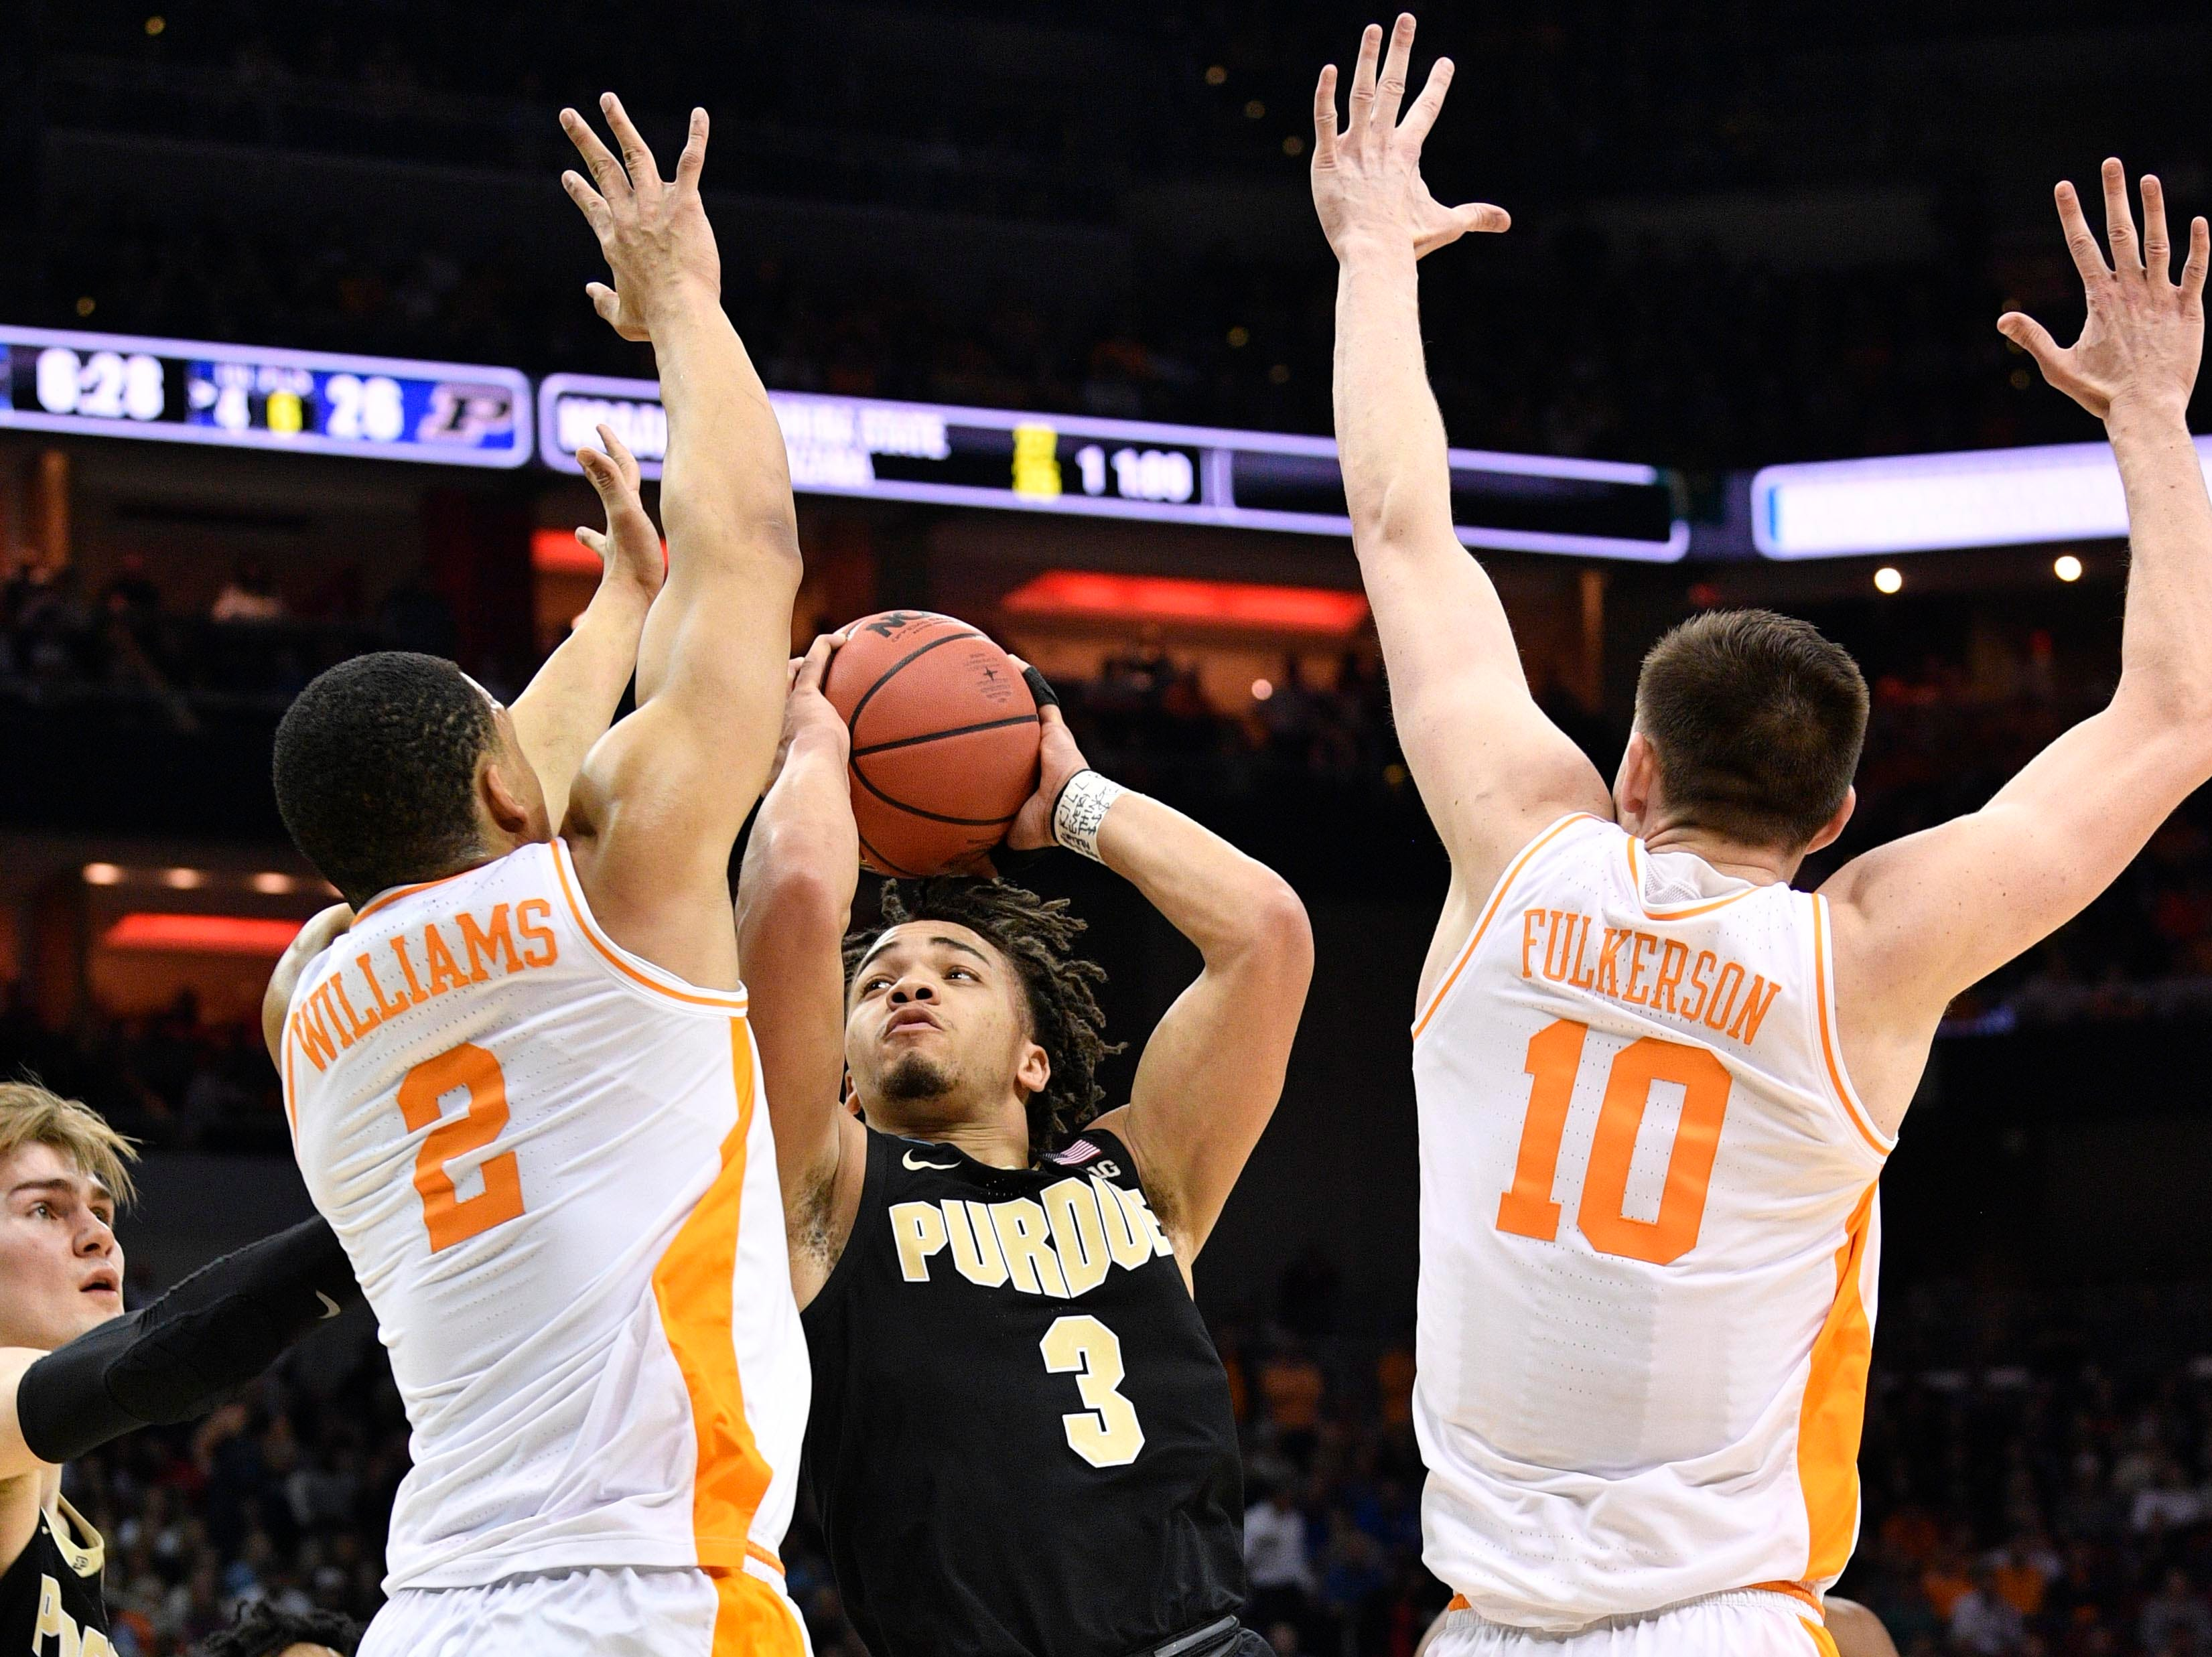 Mar 28, 2019; Louisville, KY, United States; Purdue Boilermakers guard Carsen Edwards (3) shoots as Tennessee Volunteers forward Grant Williams (2) and forward John Fulkerson (10) defend during the first half in the semifinals of the south regional of the 2019 NCAA Tournament at KFC Yum Center. Mandatory Credit: Jamie Rhodes-USA TODAY Sports